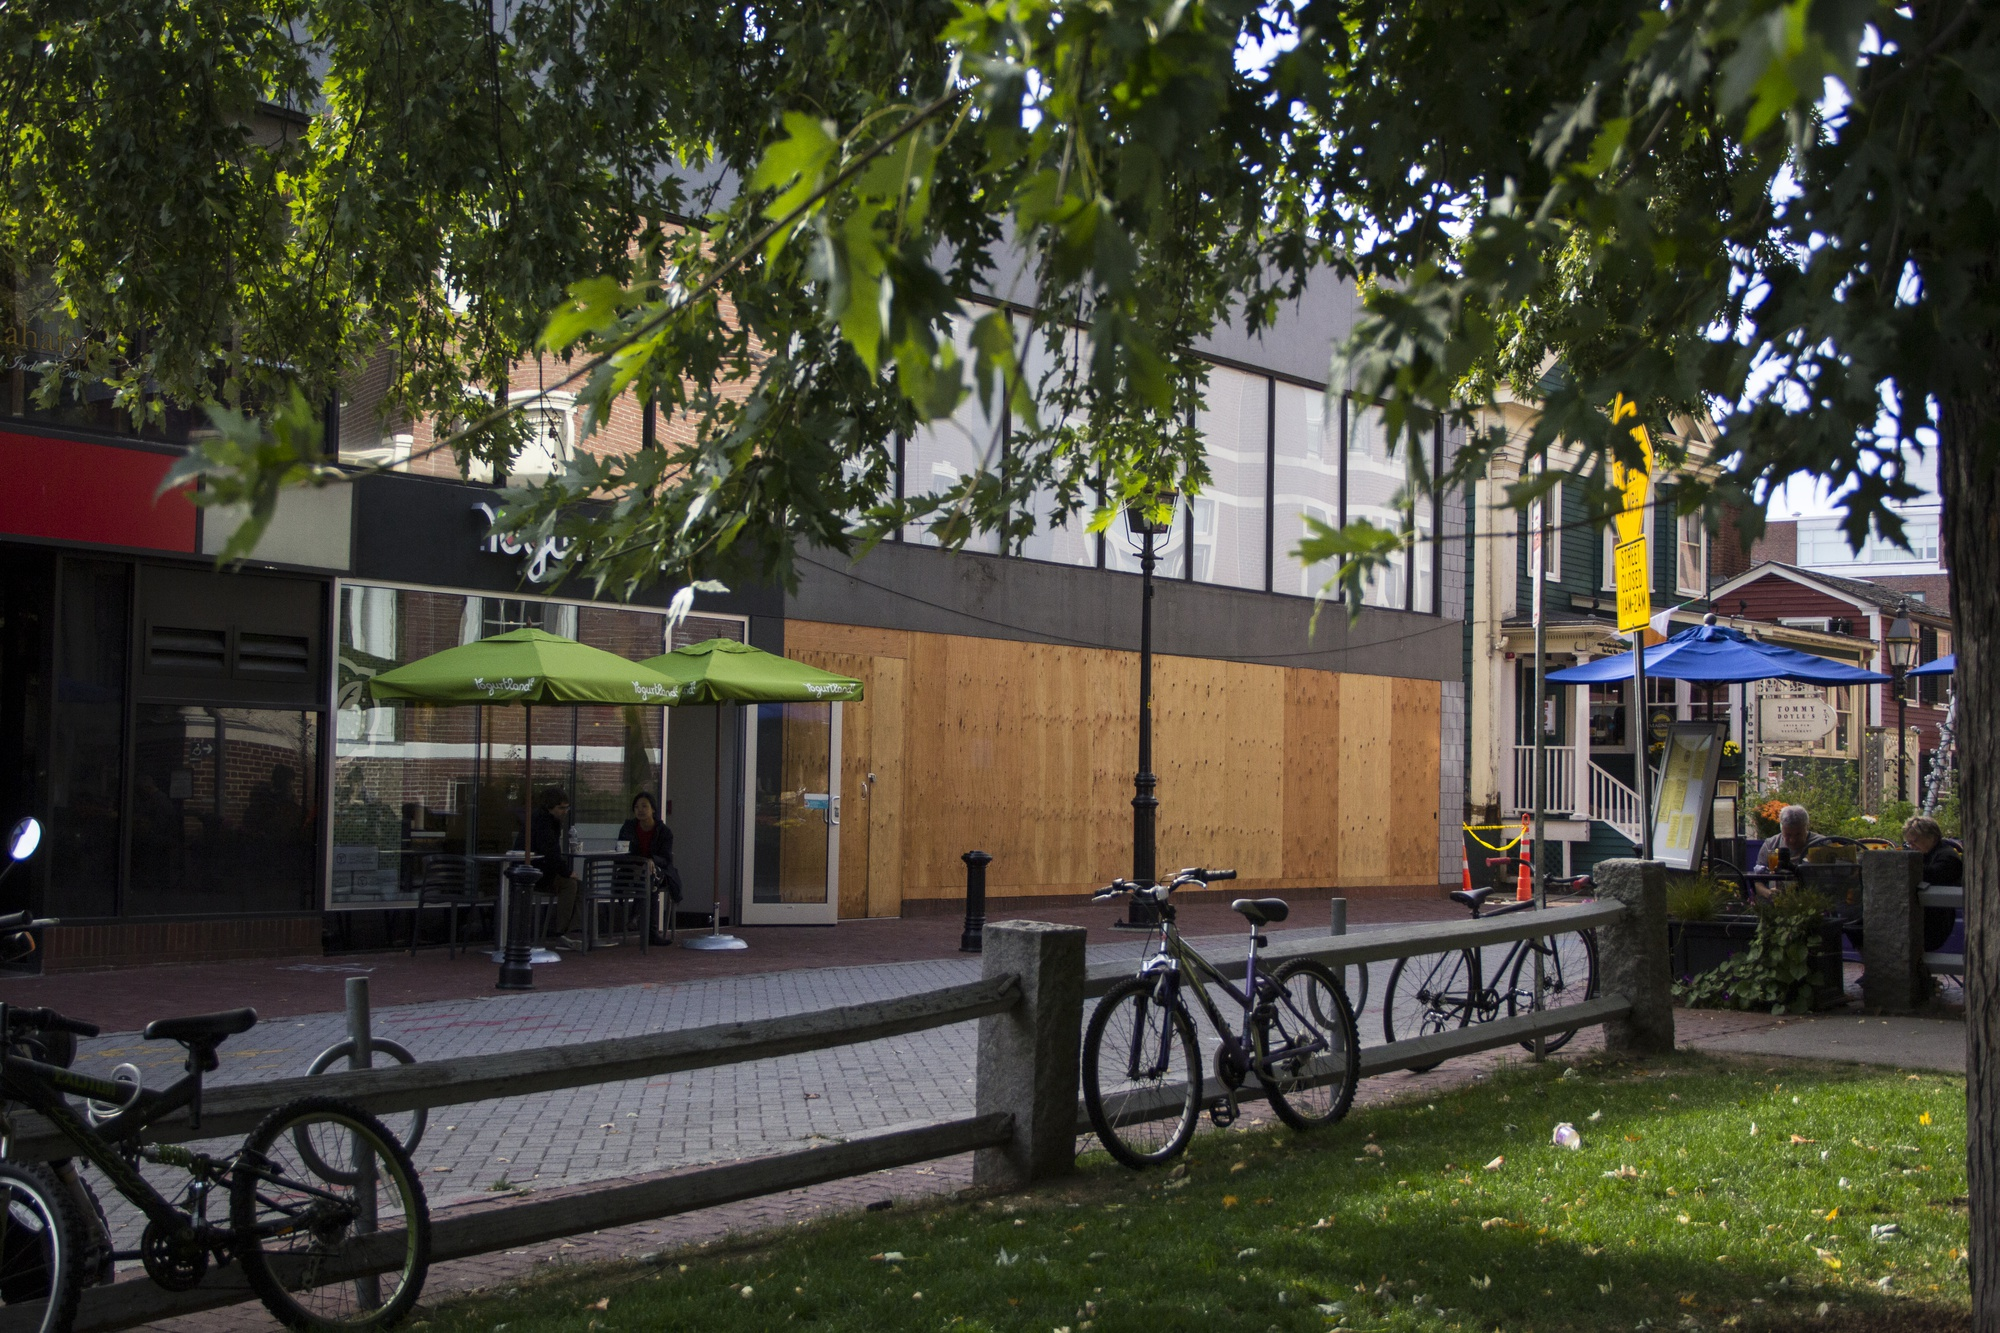 Shake Shack will likely open its Harvard Square branch in December. The fast-food burger restaurant will be located in Winthrop Square next to Yogurtland and Upstairs on the Square.